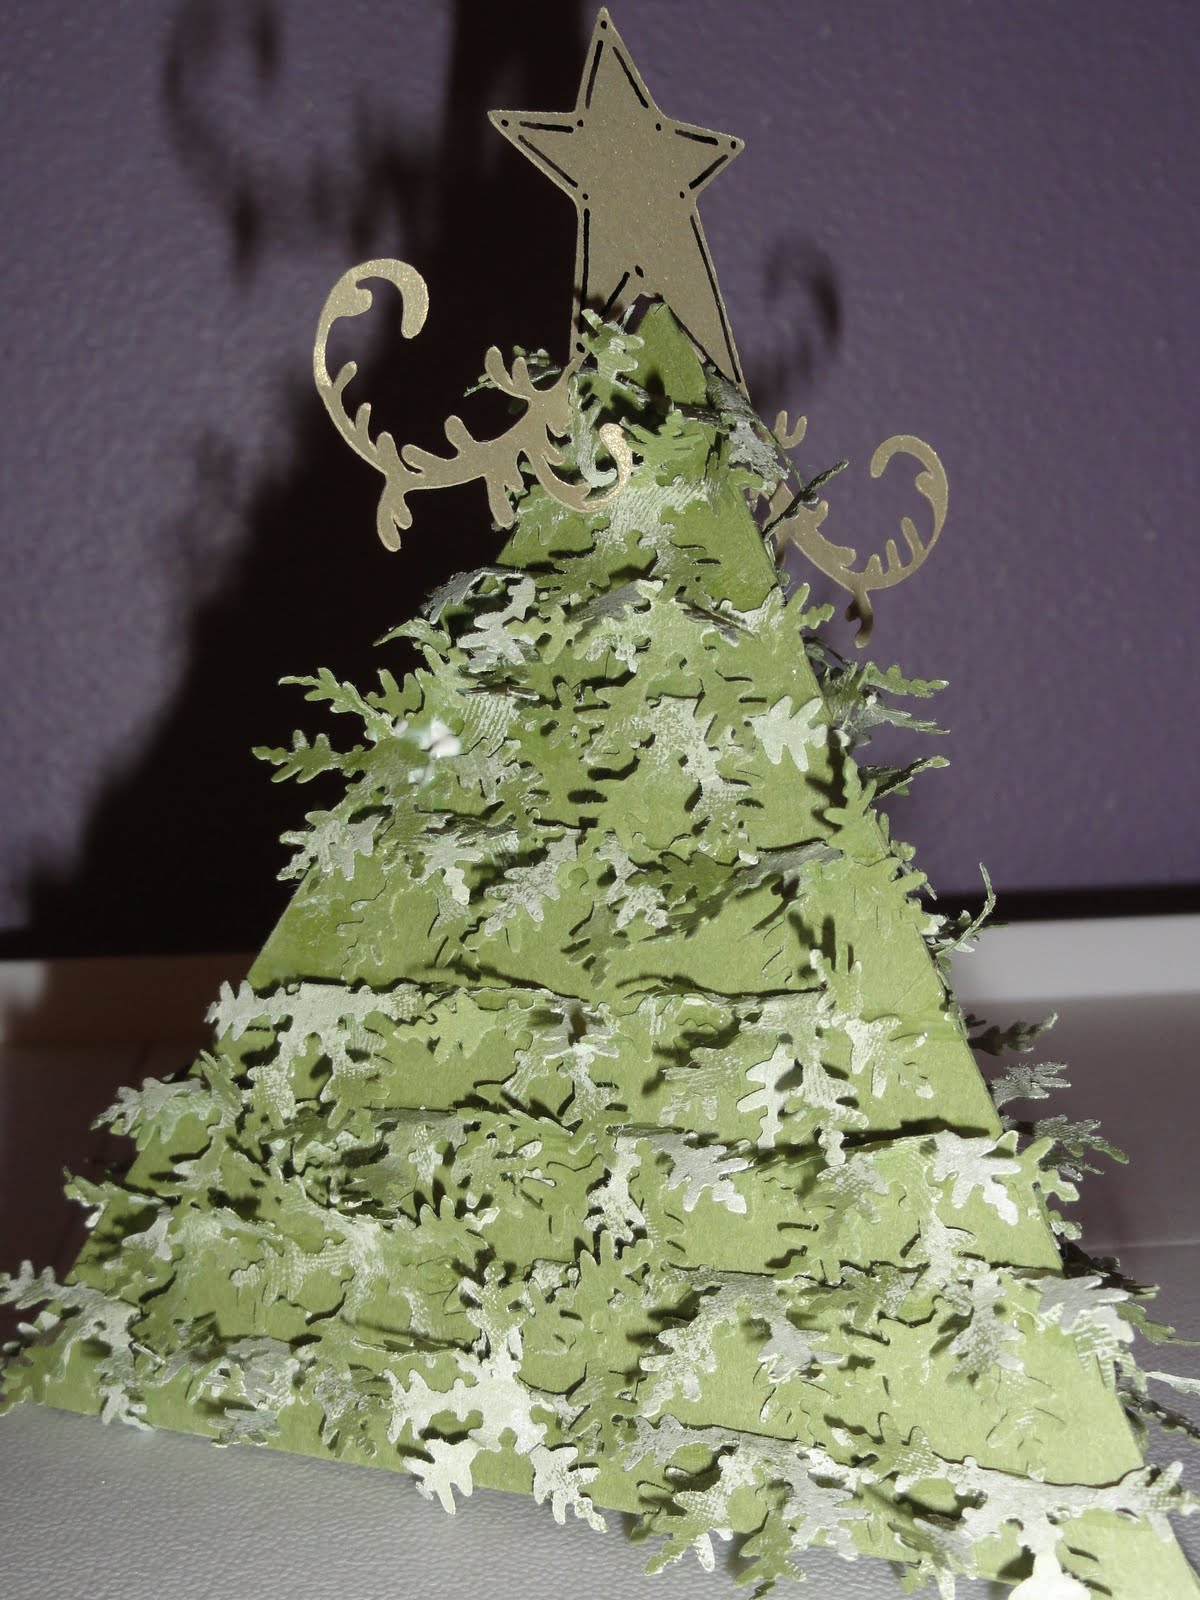 3d Christmas Tree Cut Out I cut out the triangle box